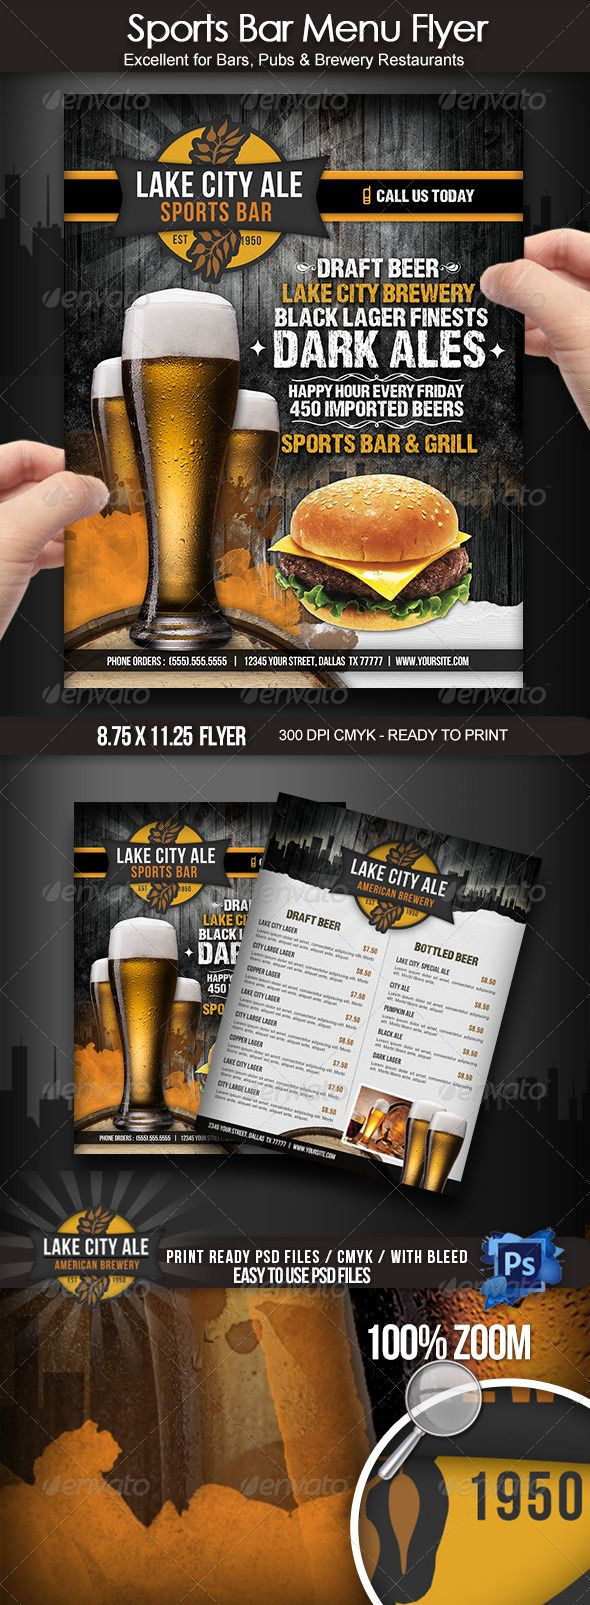 Best Images About Food Ads On   Behance Flyer